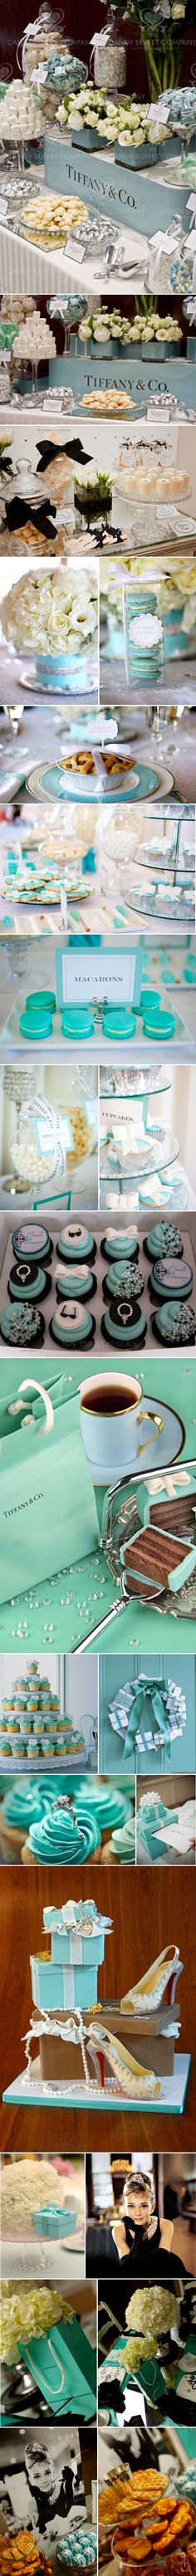 Tiffany & Co bridal shower inspiration - candy buffet, tablescapes, roses, gift boxes